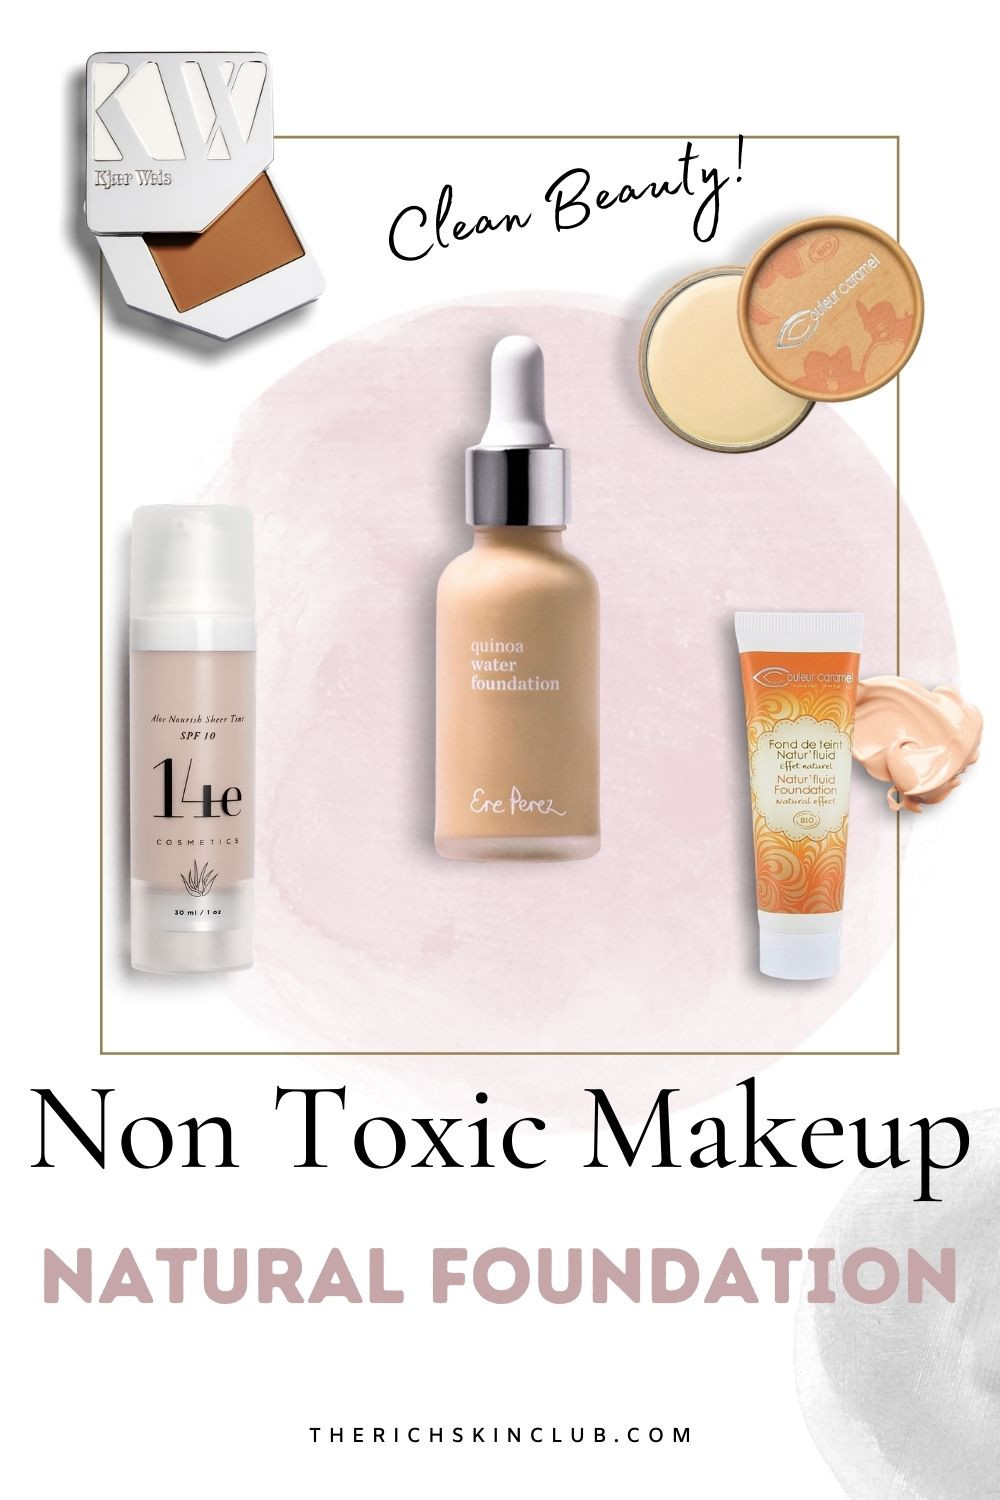 Are you tired of clogging your pores with toxic foundation? Me too! That's why I choose these products that contain Anti-Aging Skin Care Ingredients! Check out my top fav clean beauty makeup brands for safer, healthier, non toxic makeup. Switch your old toxic makeup for Clean Beauty Makeup Dupes #nontoxicmakeup #cleanbeautyproducts #organicmakeup #naturalmakeup #organicfoundation